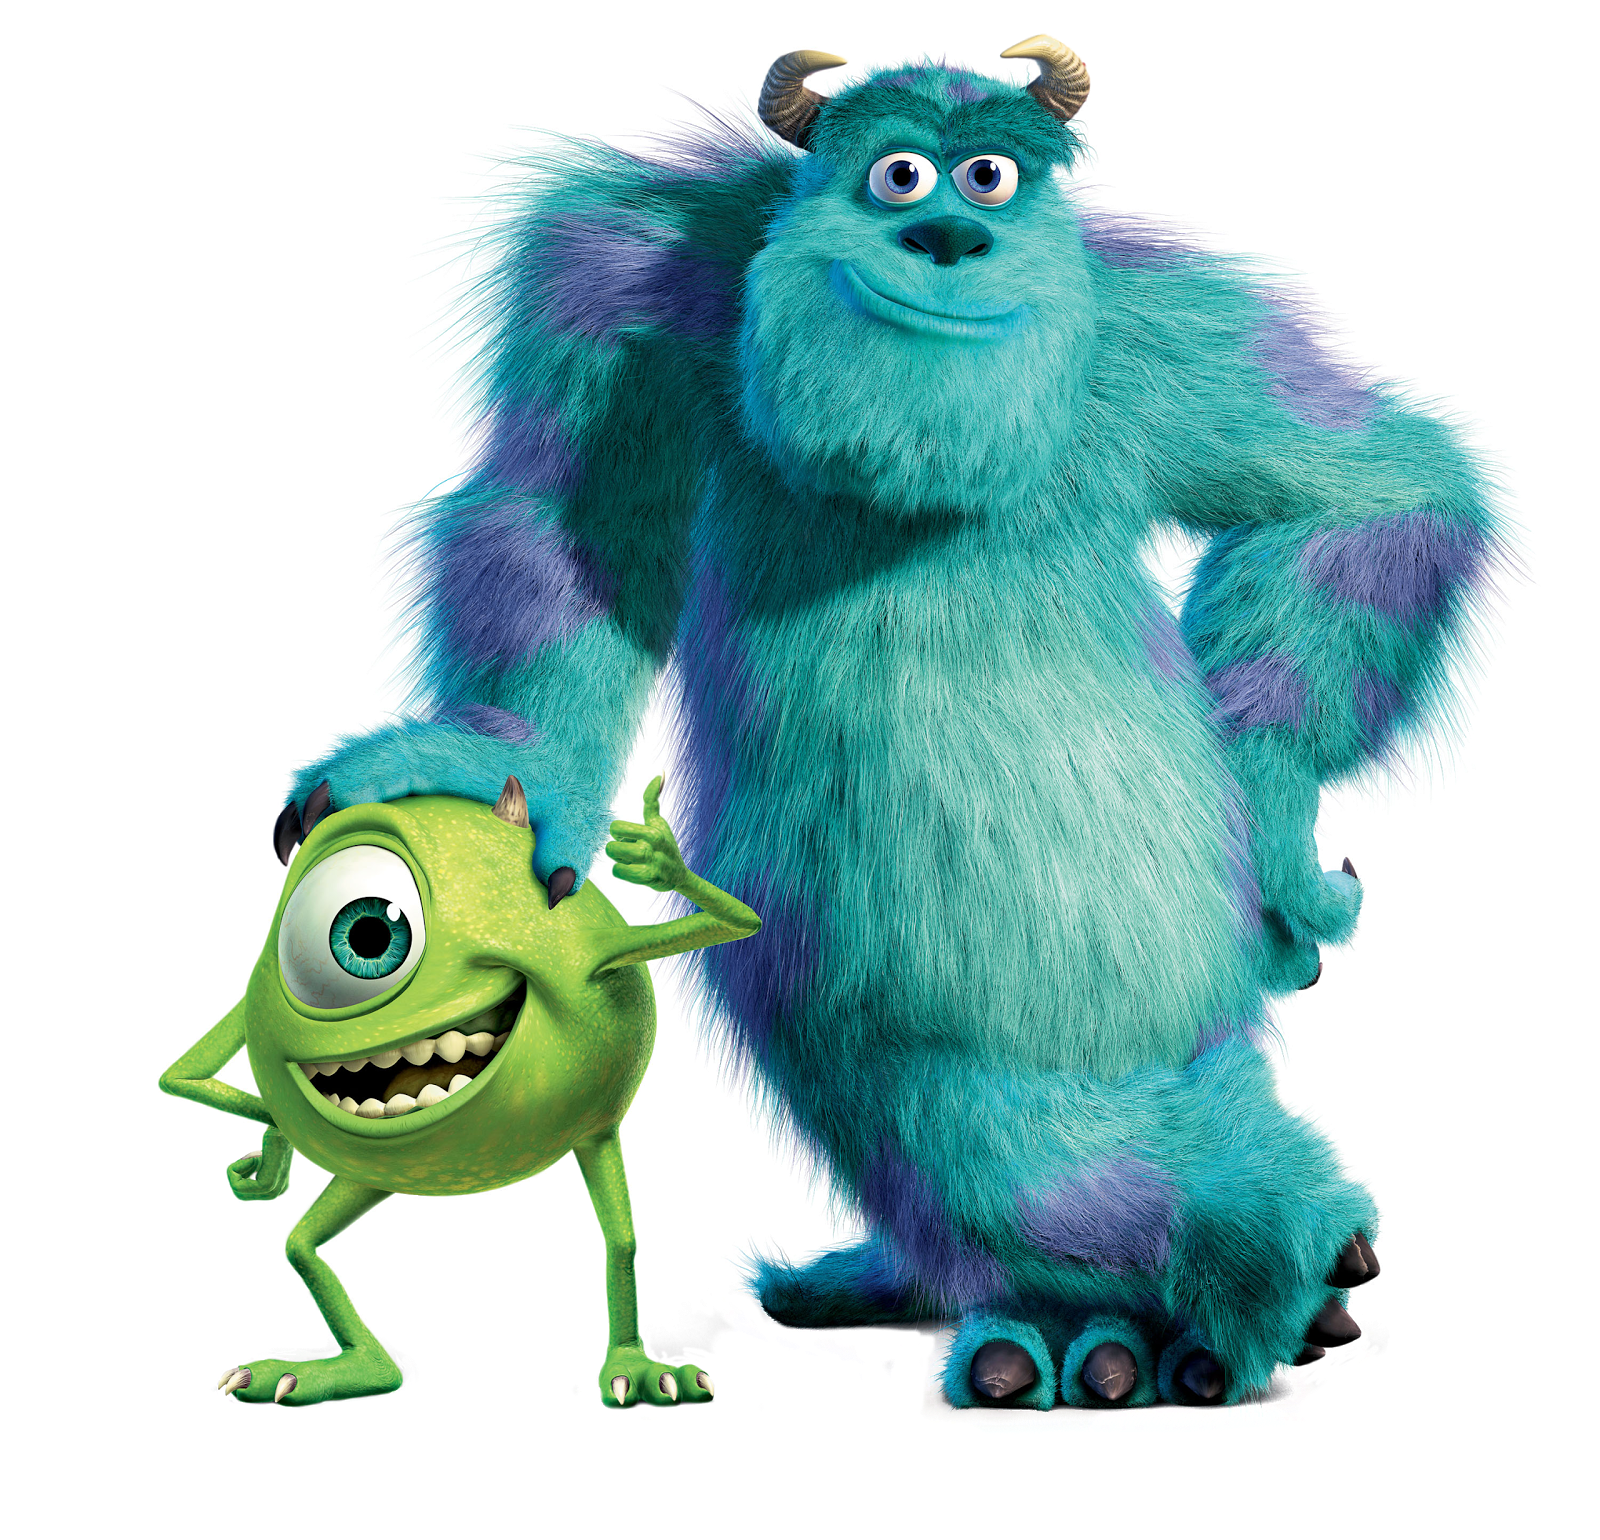 monsters inc The latest tweets from monsters, inc ™ (@monstersinc) boo, mike wazowski, james p sullivan (sulley), walt disney animation studios, disney, disney pixar.